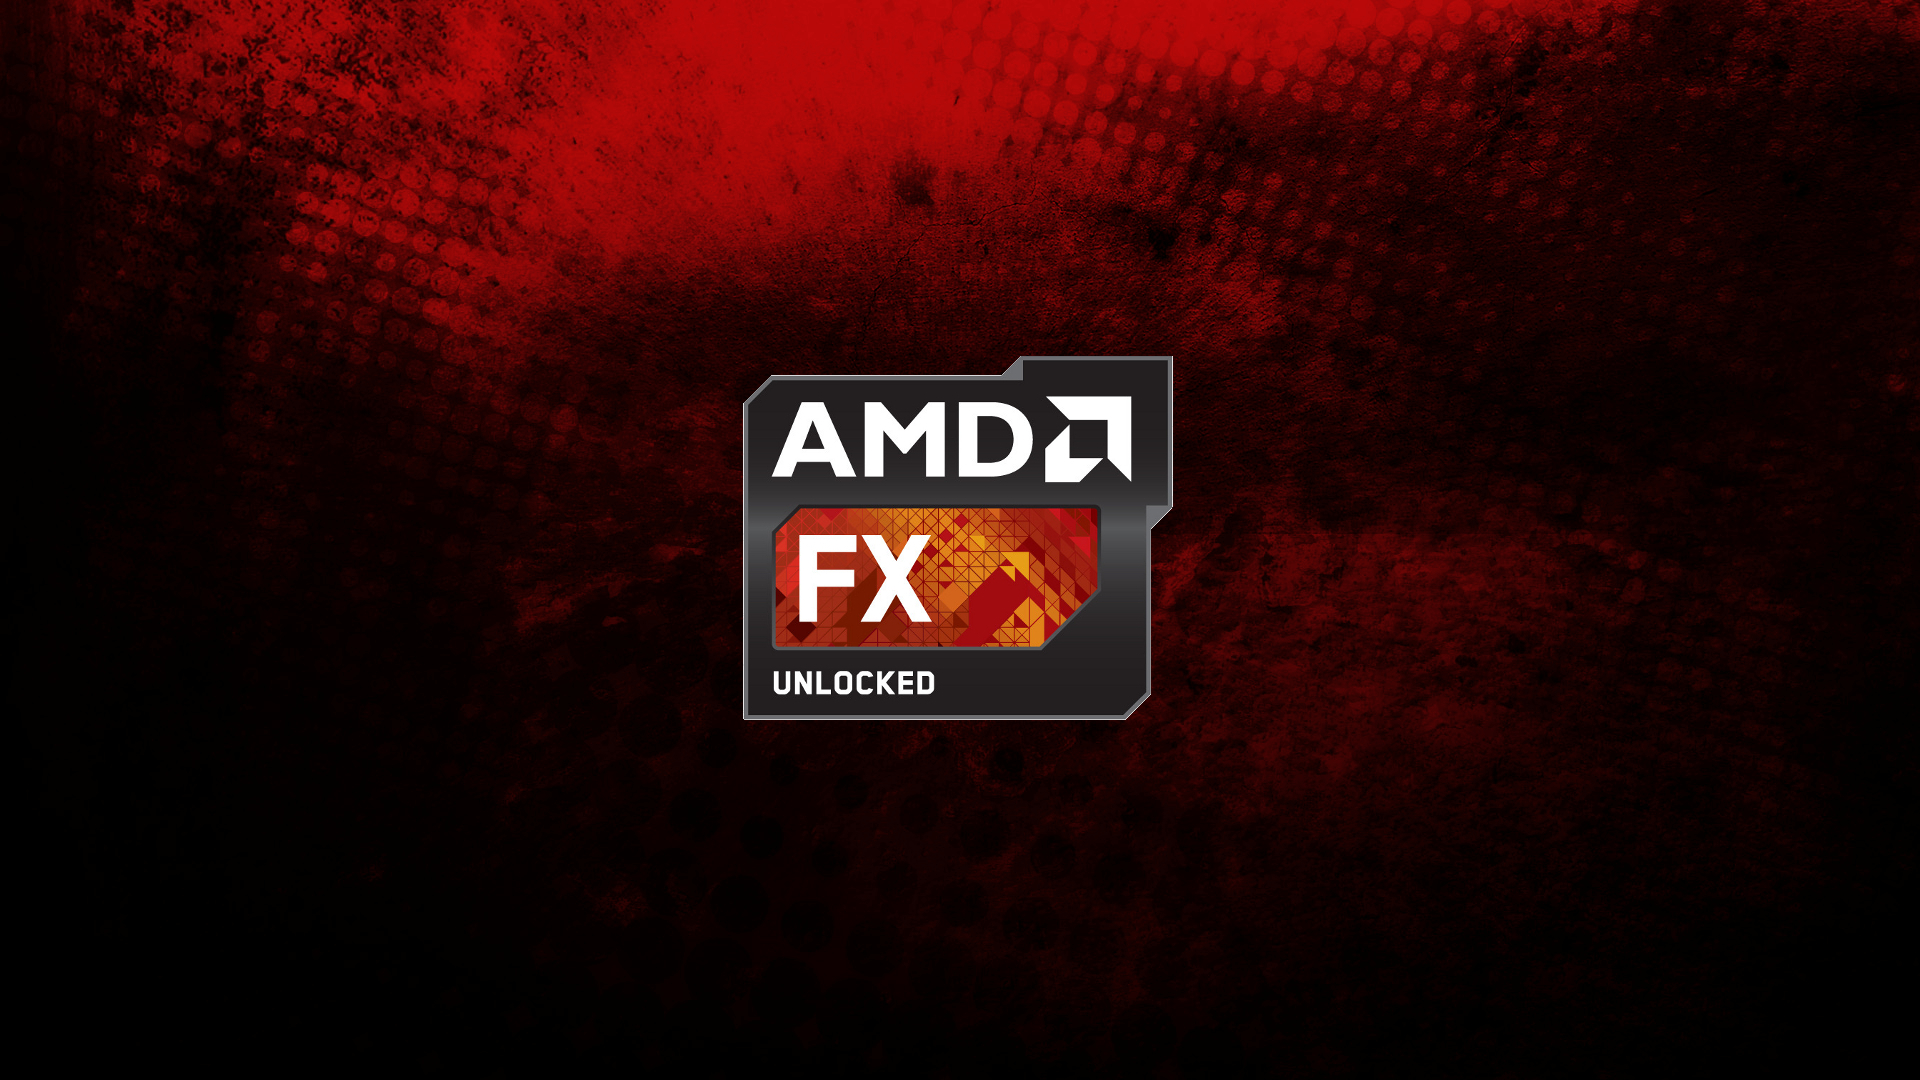 AMD FX Wallpaper